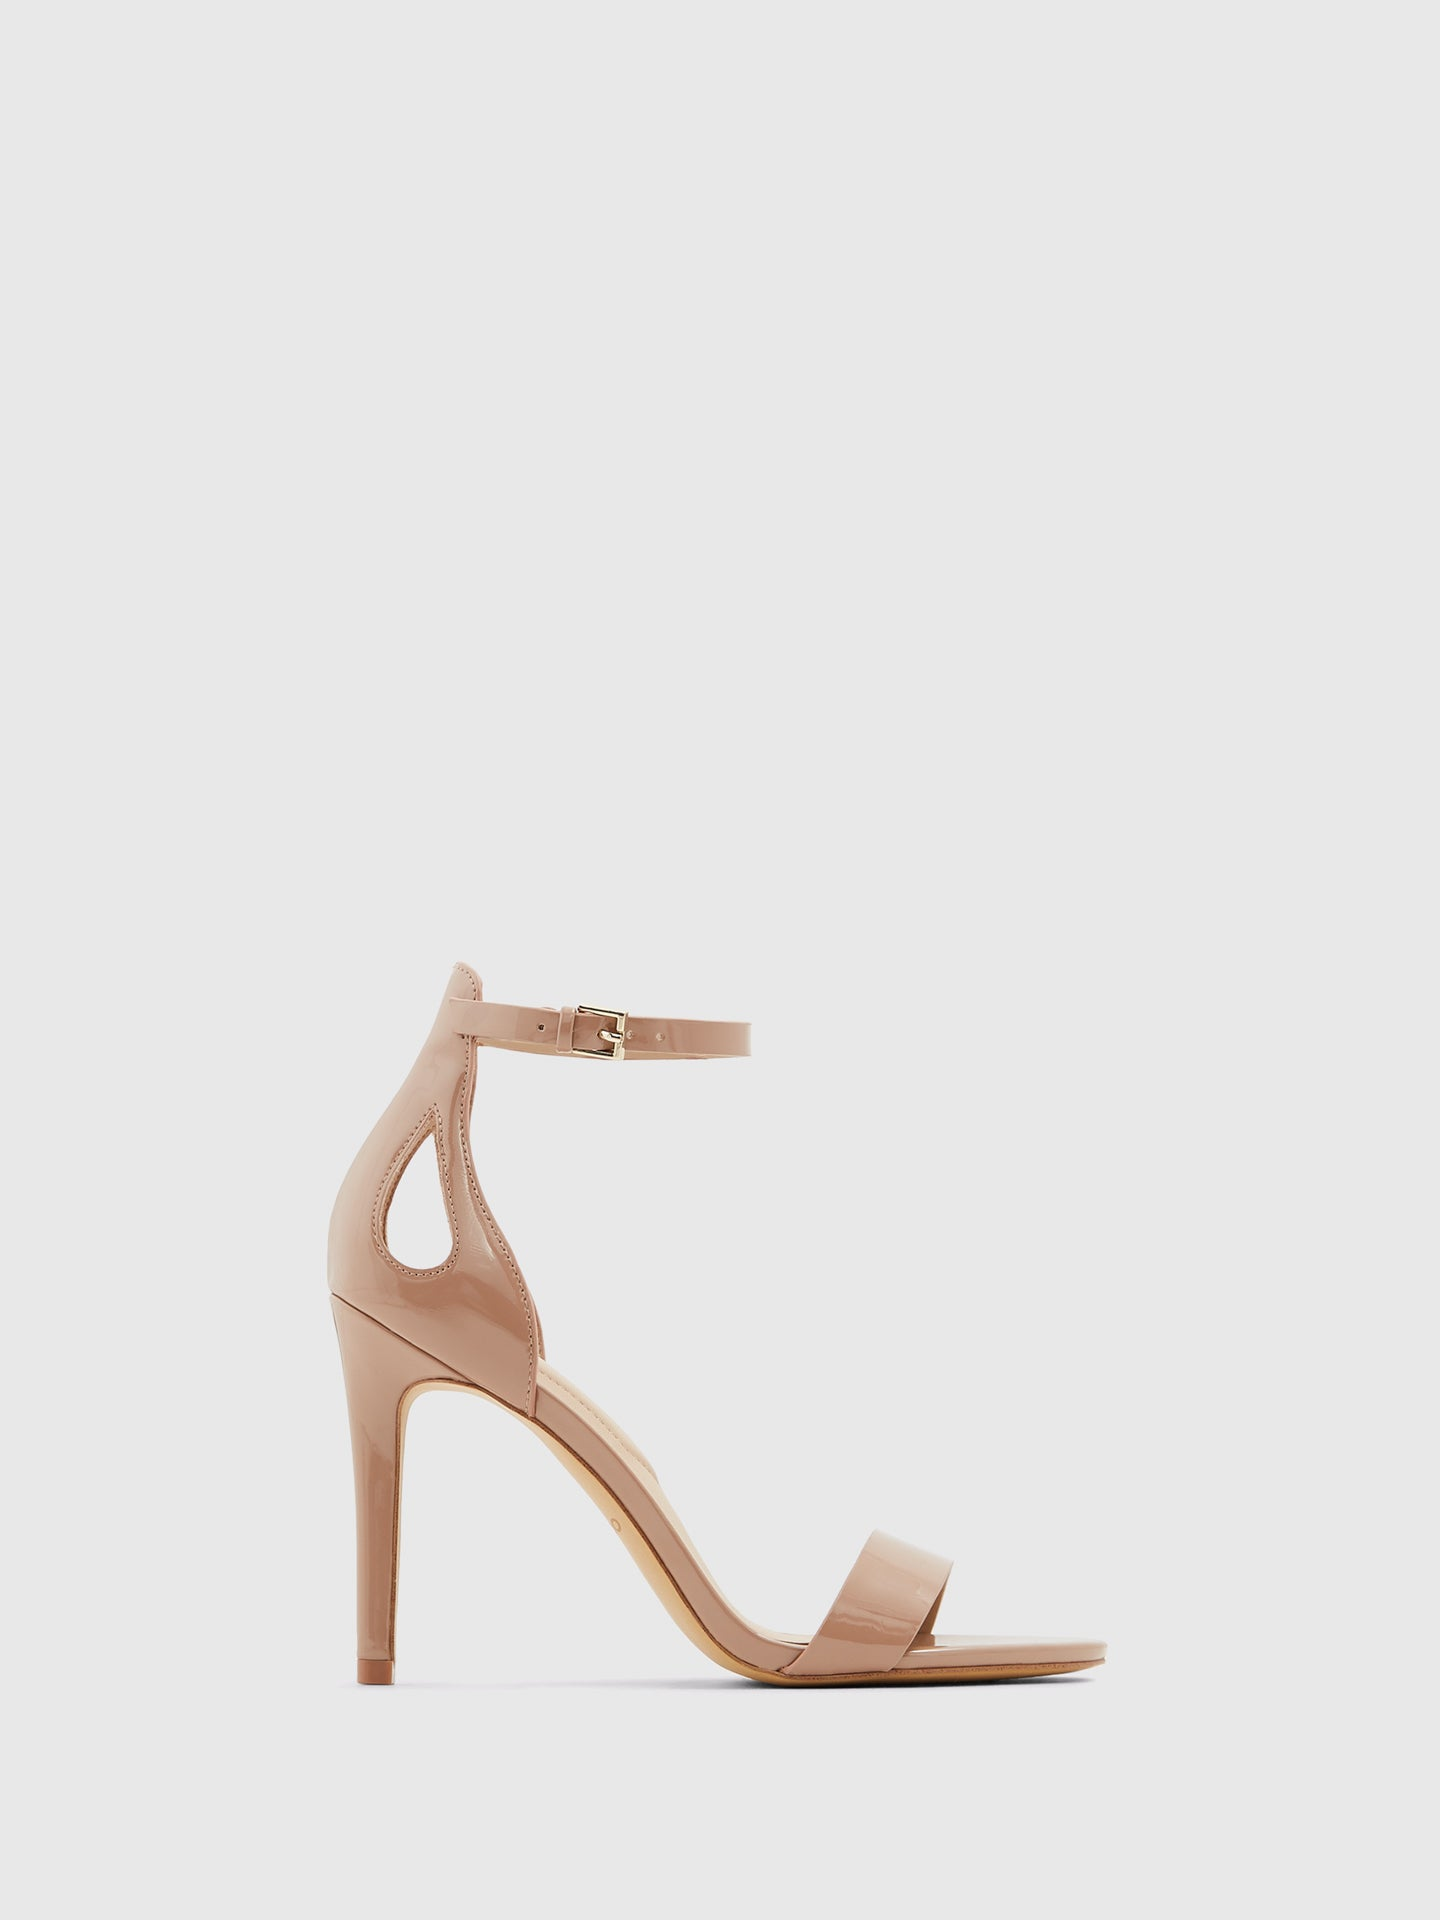 Aldo LightPink Ankle Strap Sandals